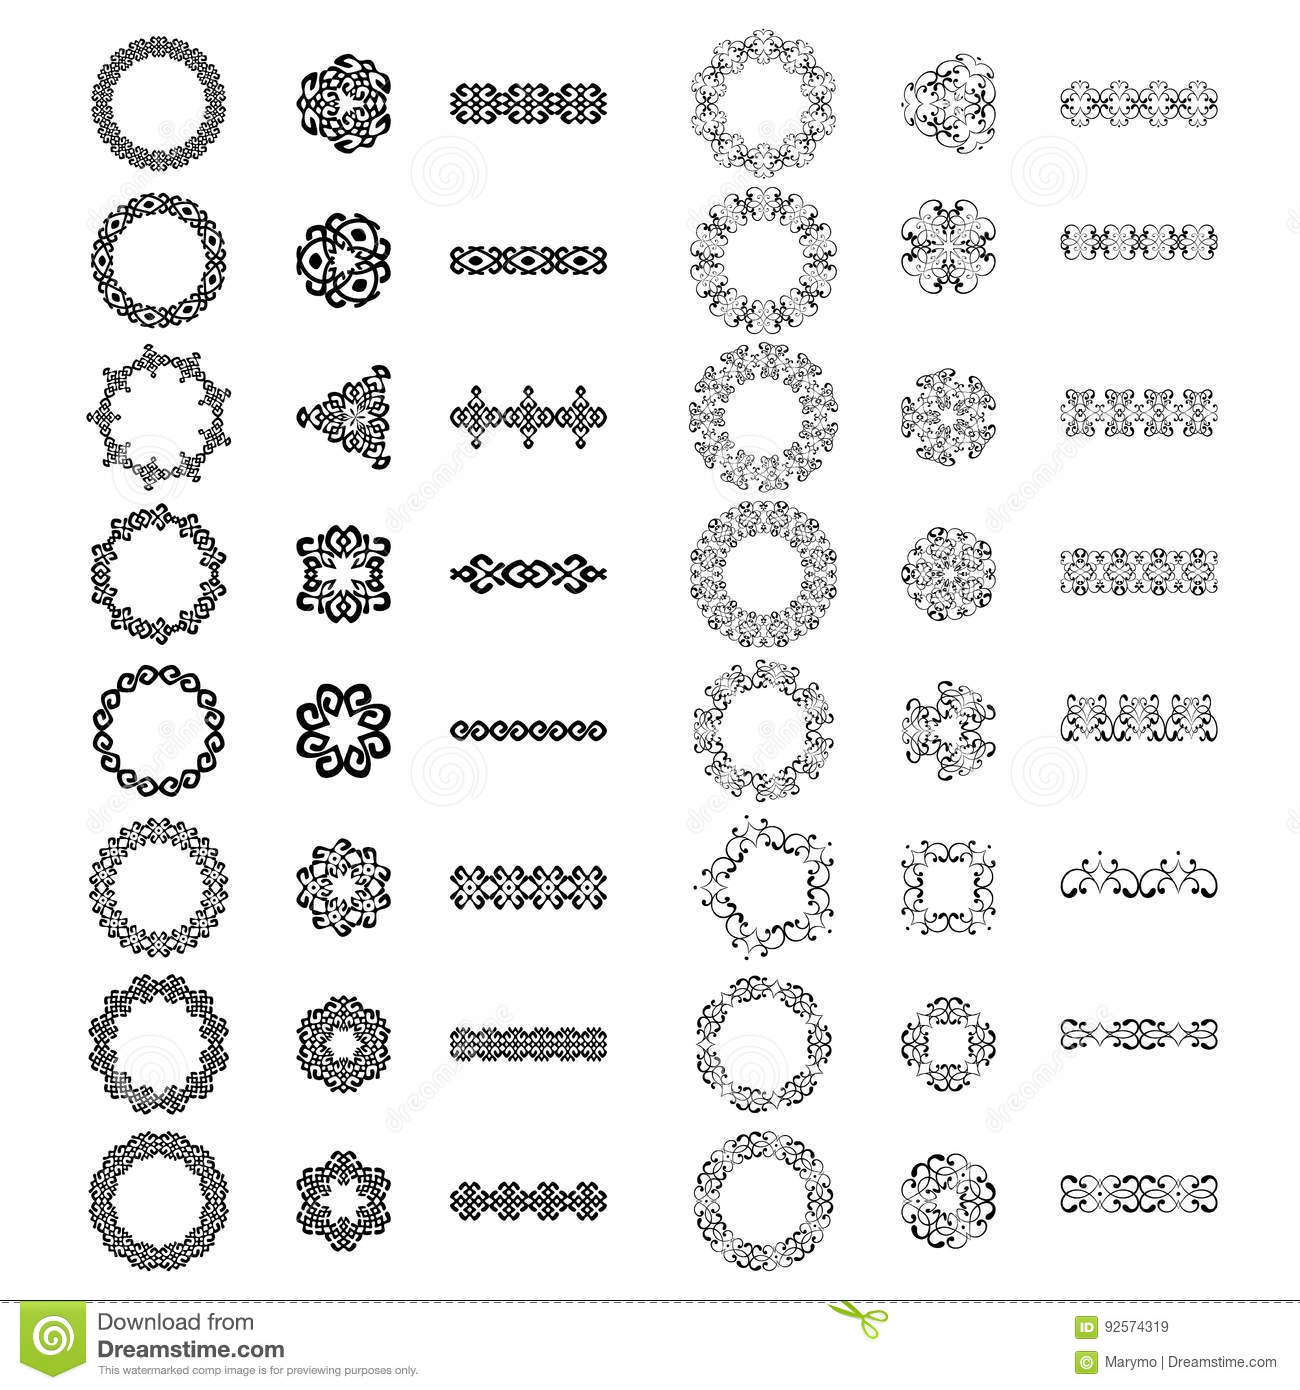 Monochromatic vintage signs, round frames, borders and dividers. Isolated on white. Vector illustration